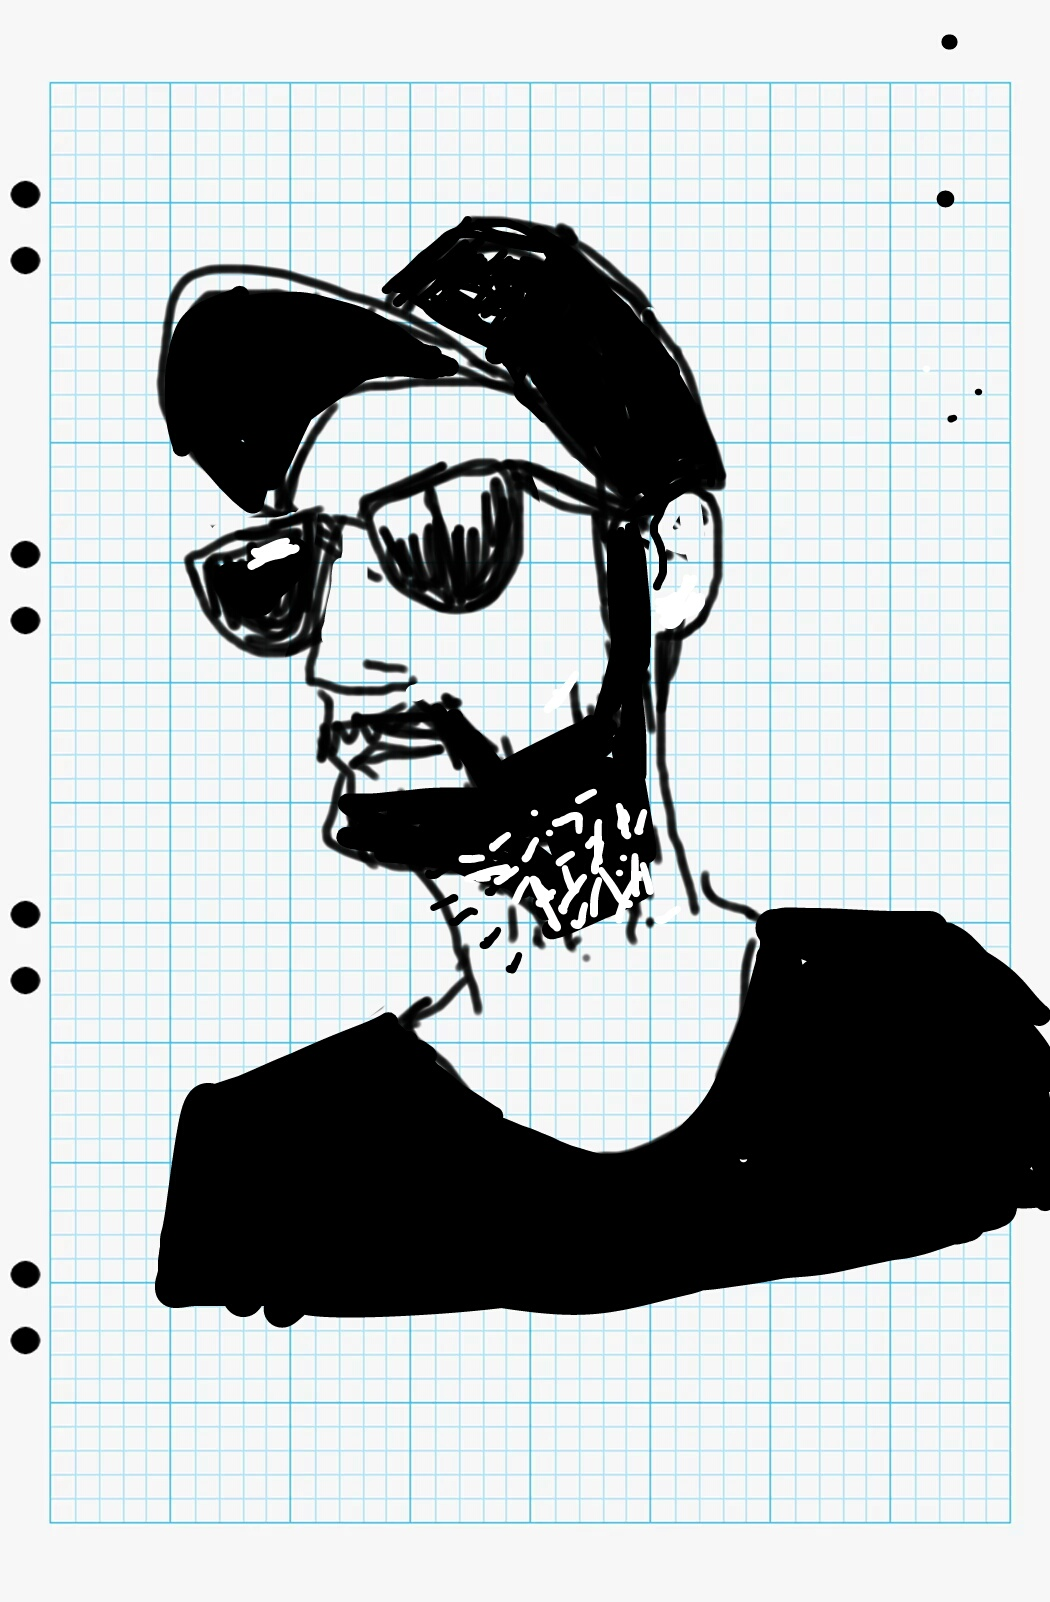 A sketch of a young man with a beard, a cap and a black tee shirt.